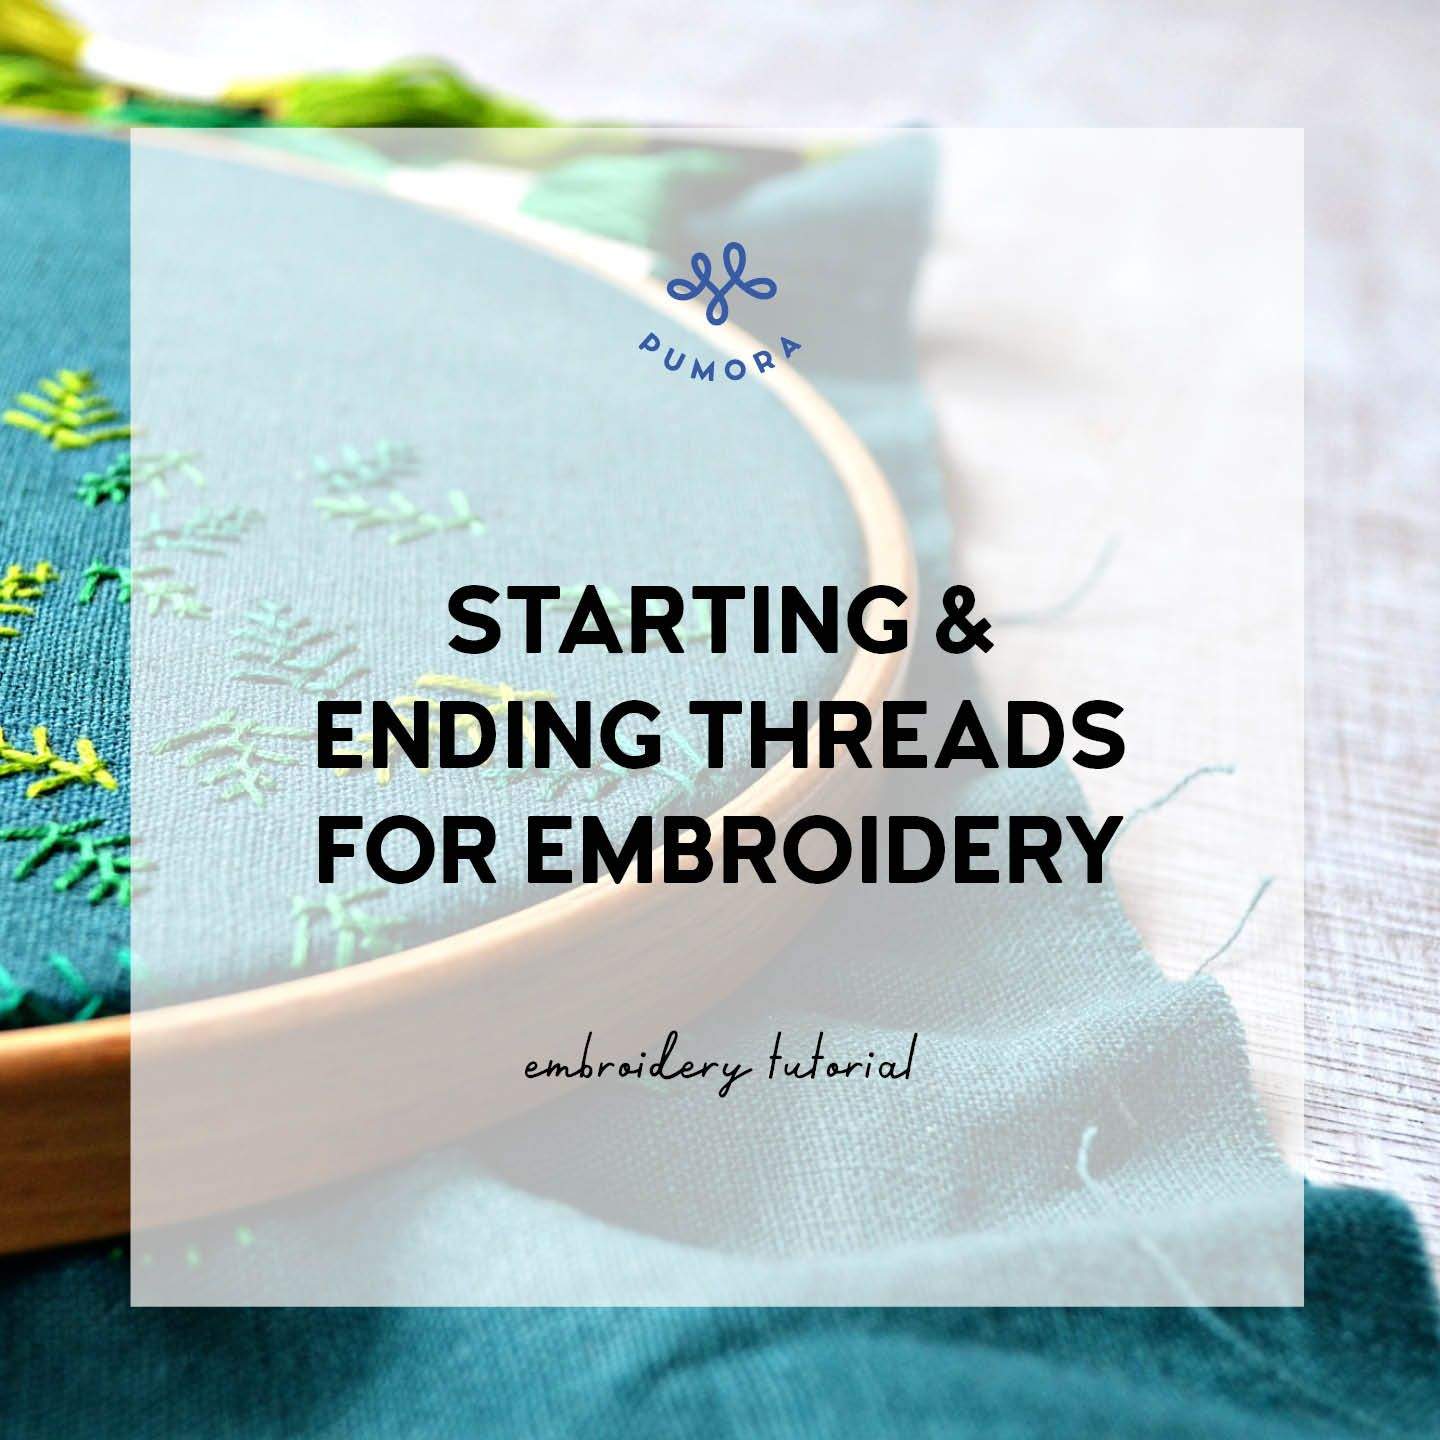 How to begin an embroidery thread and end it Pumora